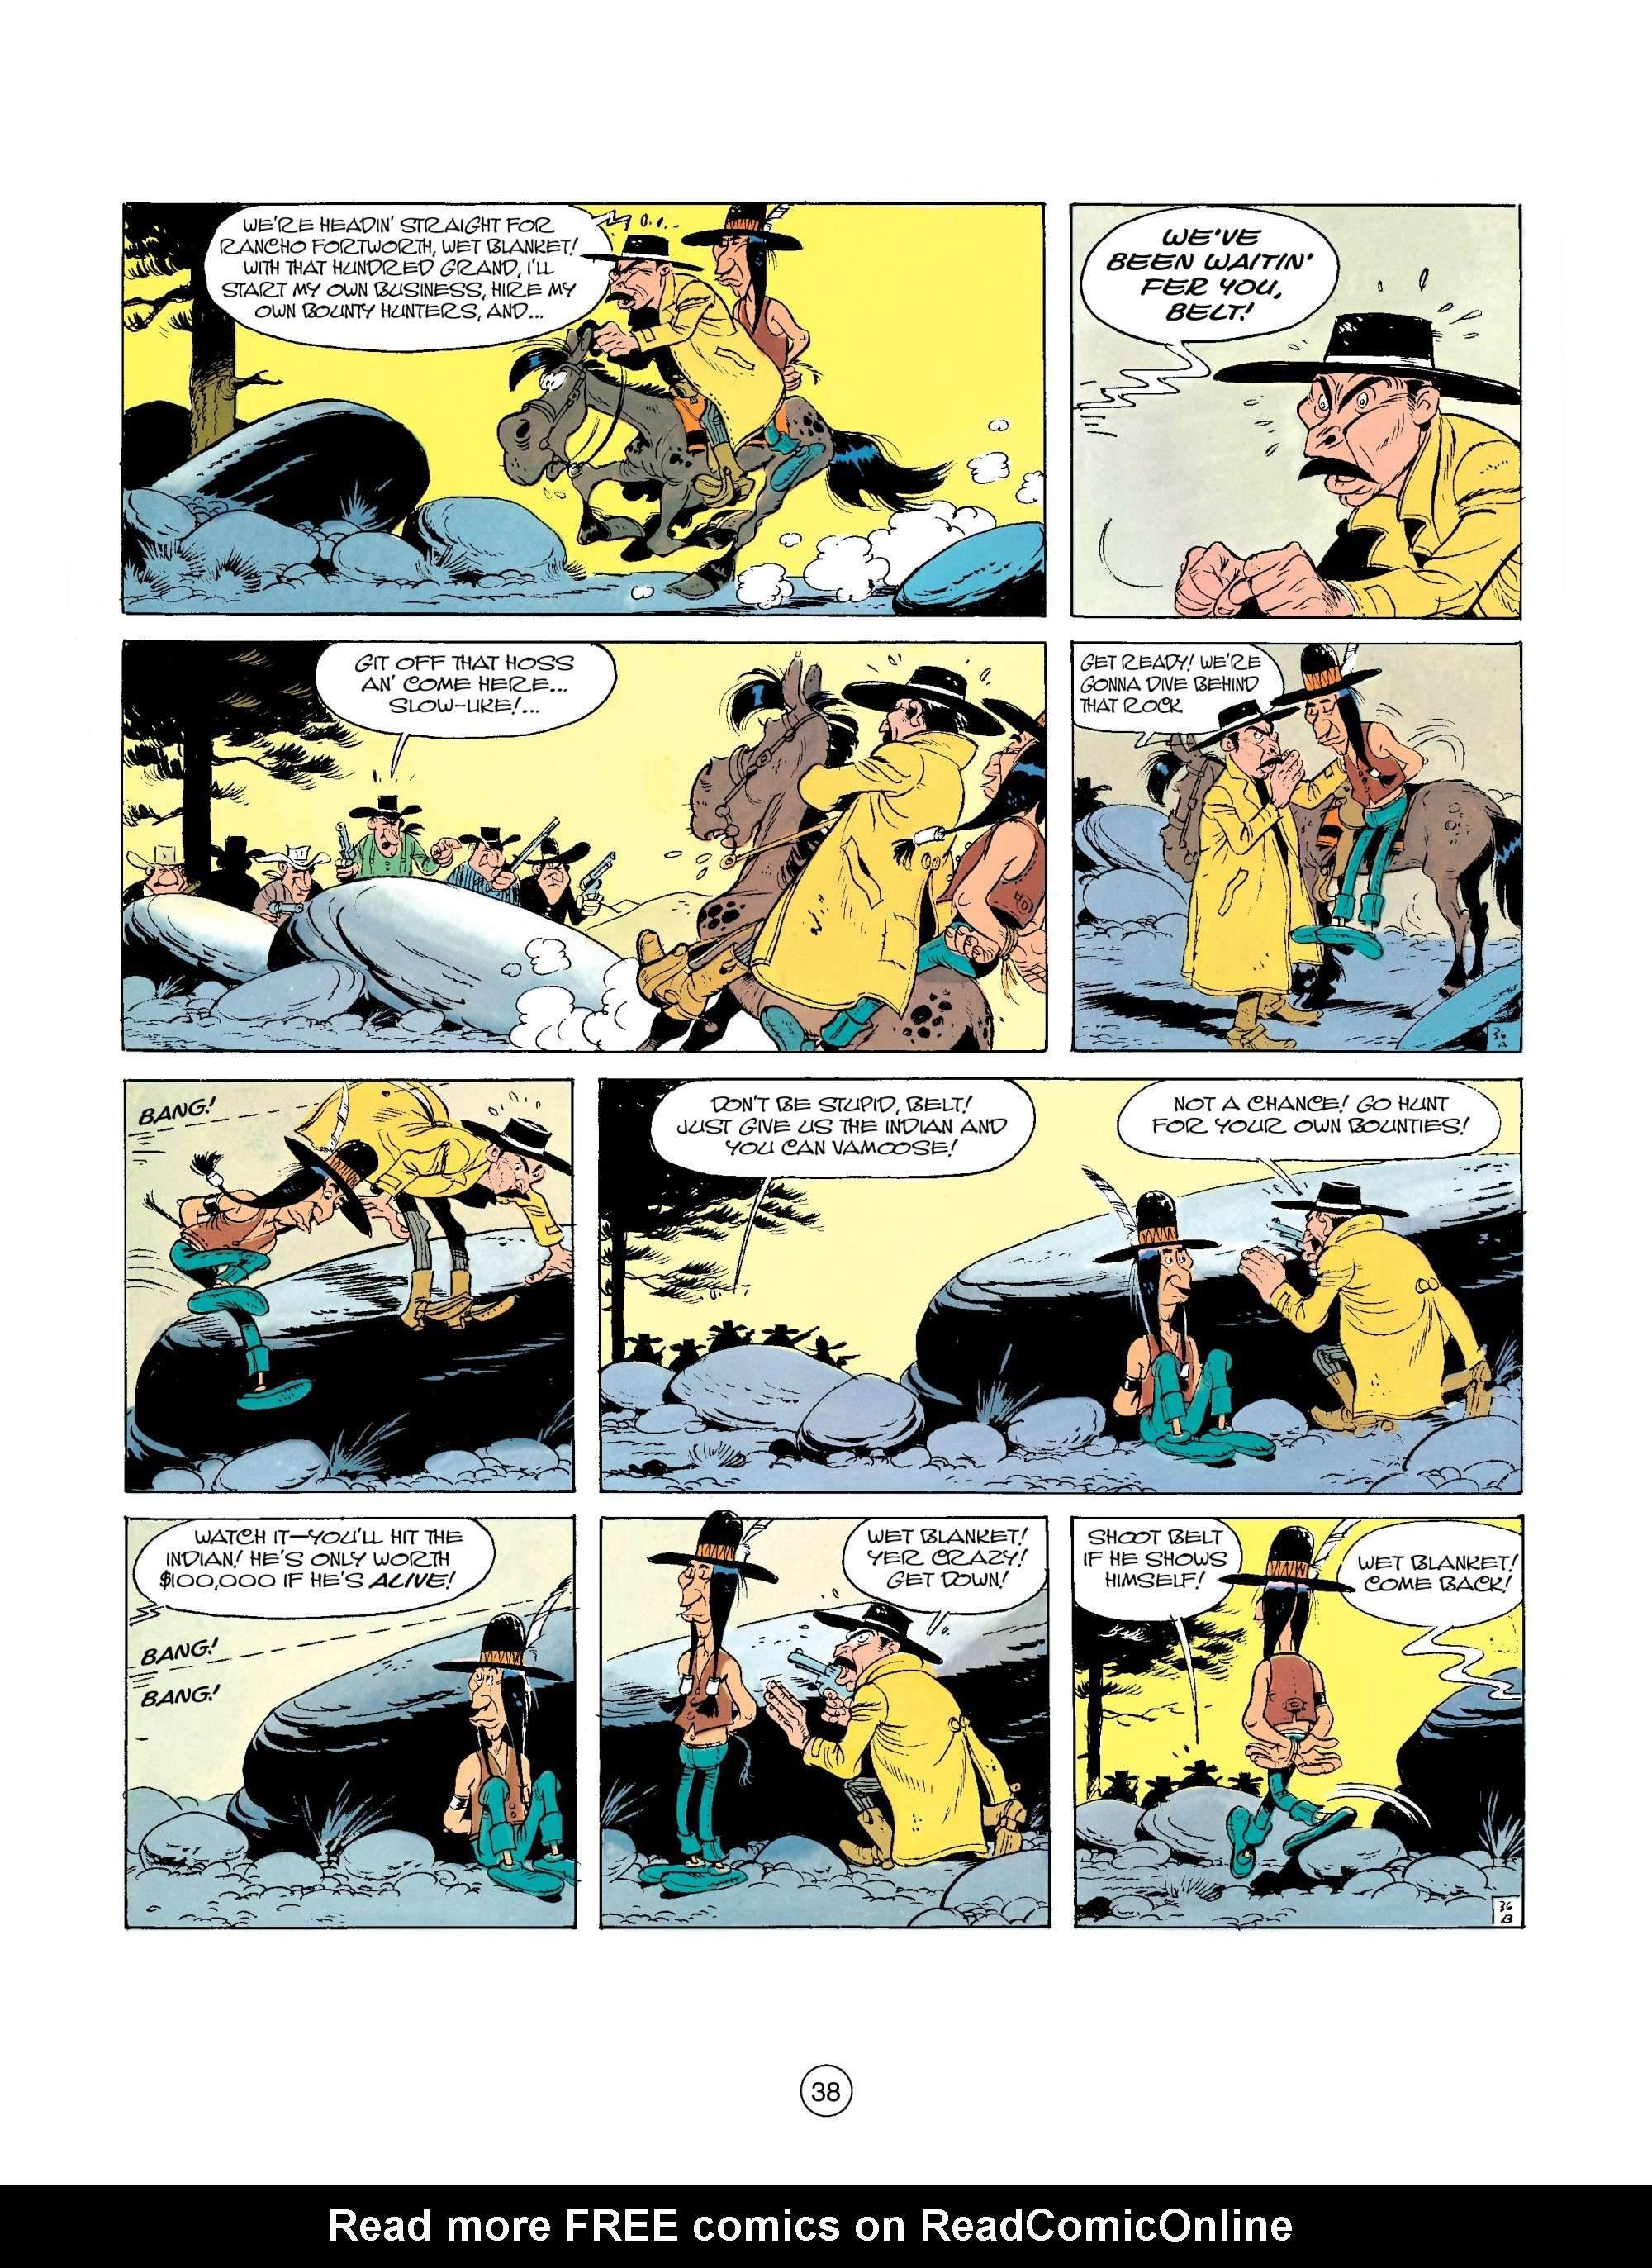 A Lucky Luke Adventure 26 Page 37